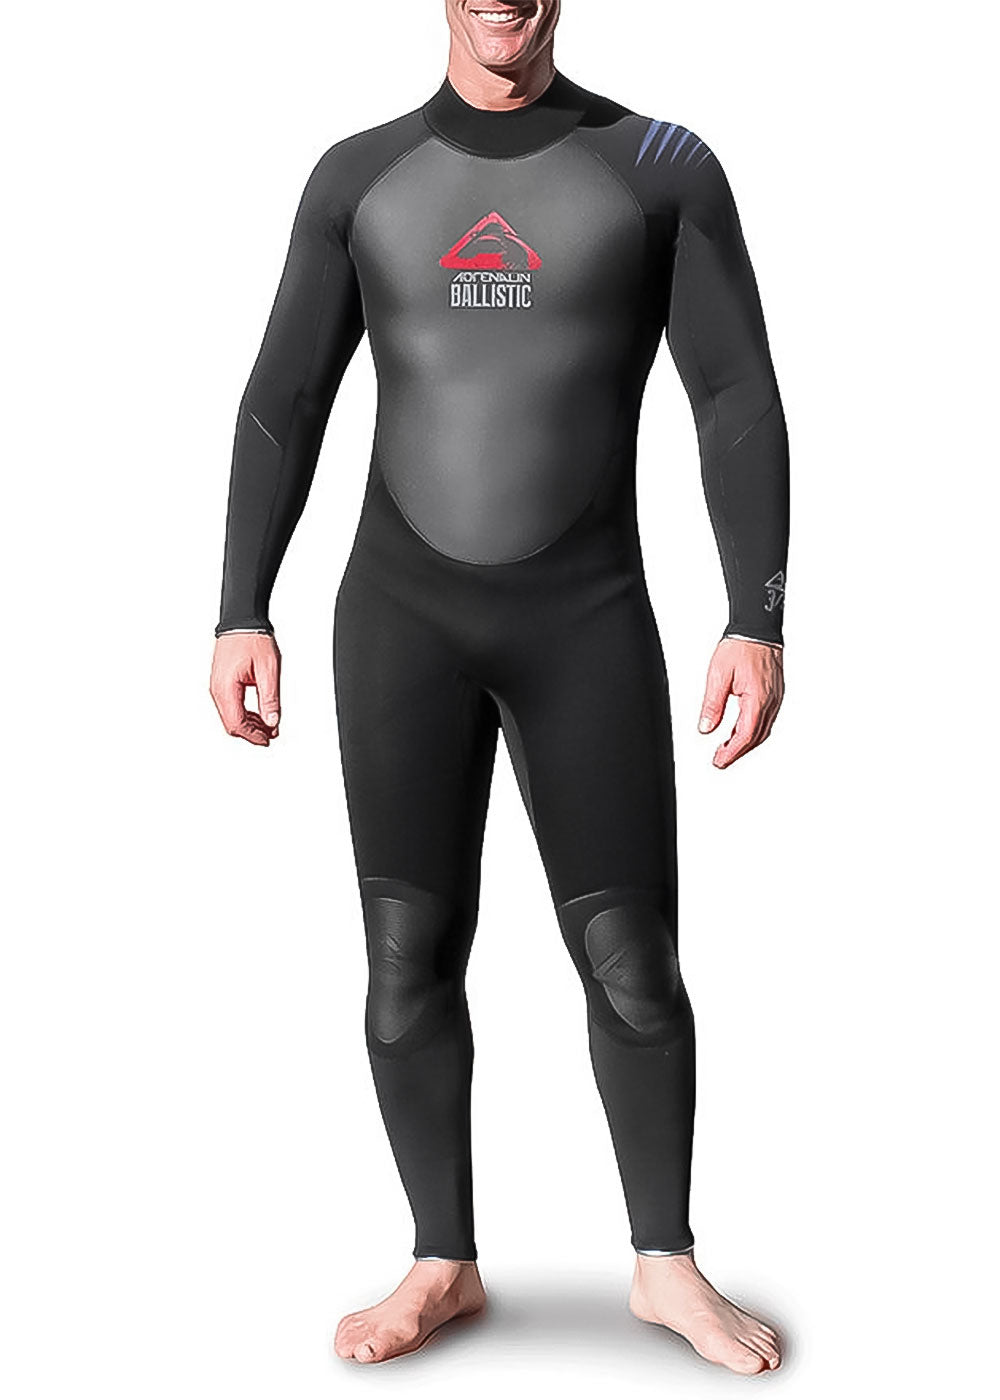 Adrenalin Mens Ballistic Batwing 4 3mm Steamer Wetsuit - Buy online with Wetsuit Warehouse